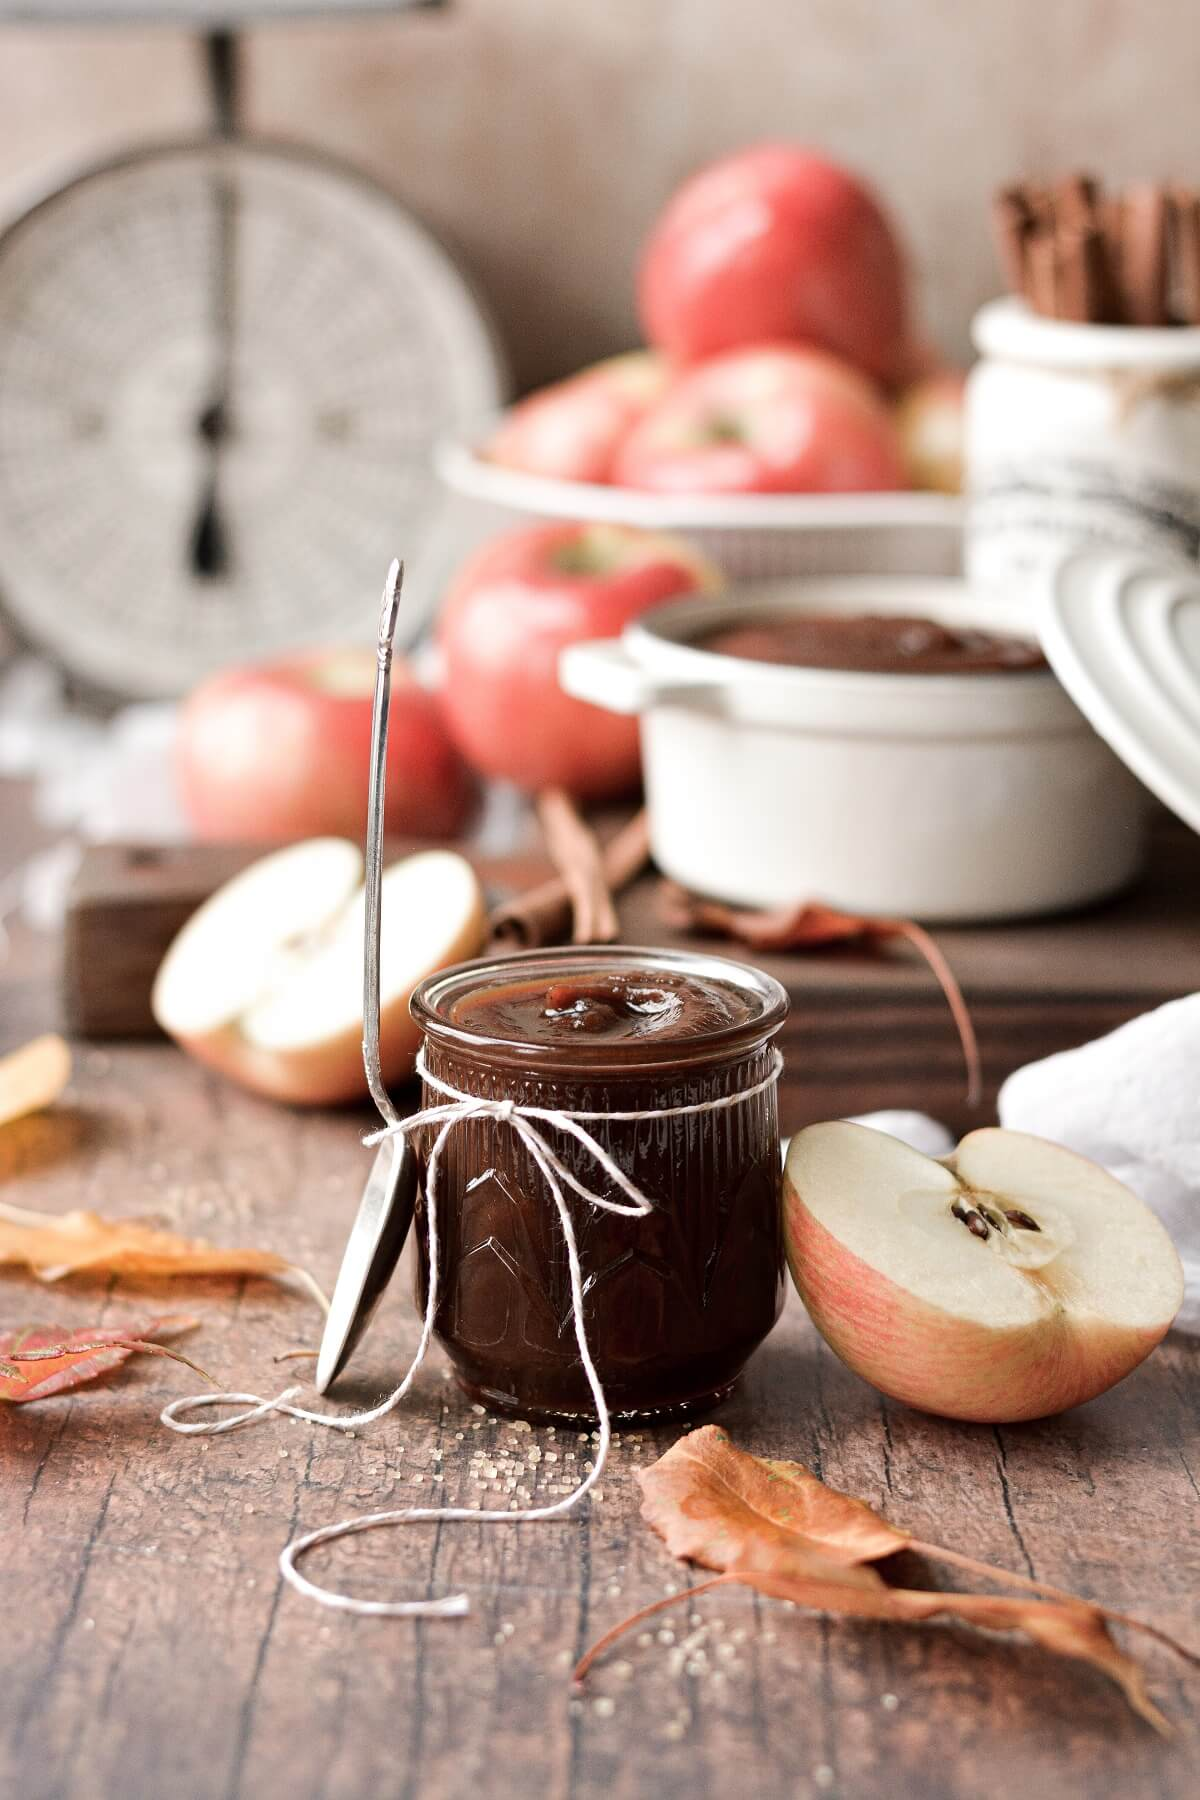 Apple butter in a glass jar, sourrounded by apples and leaves.